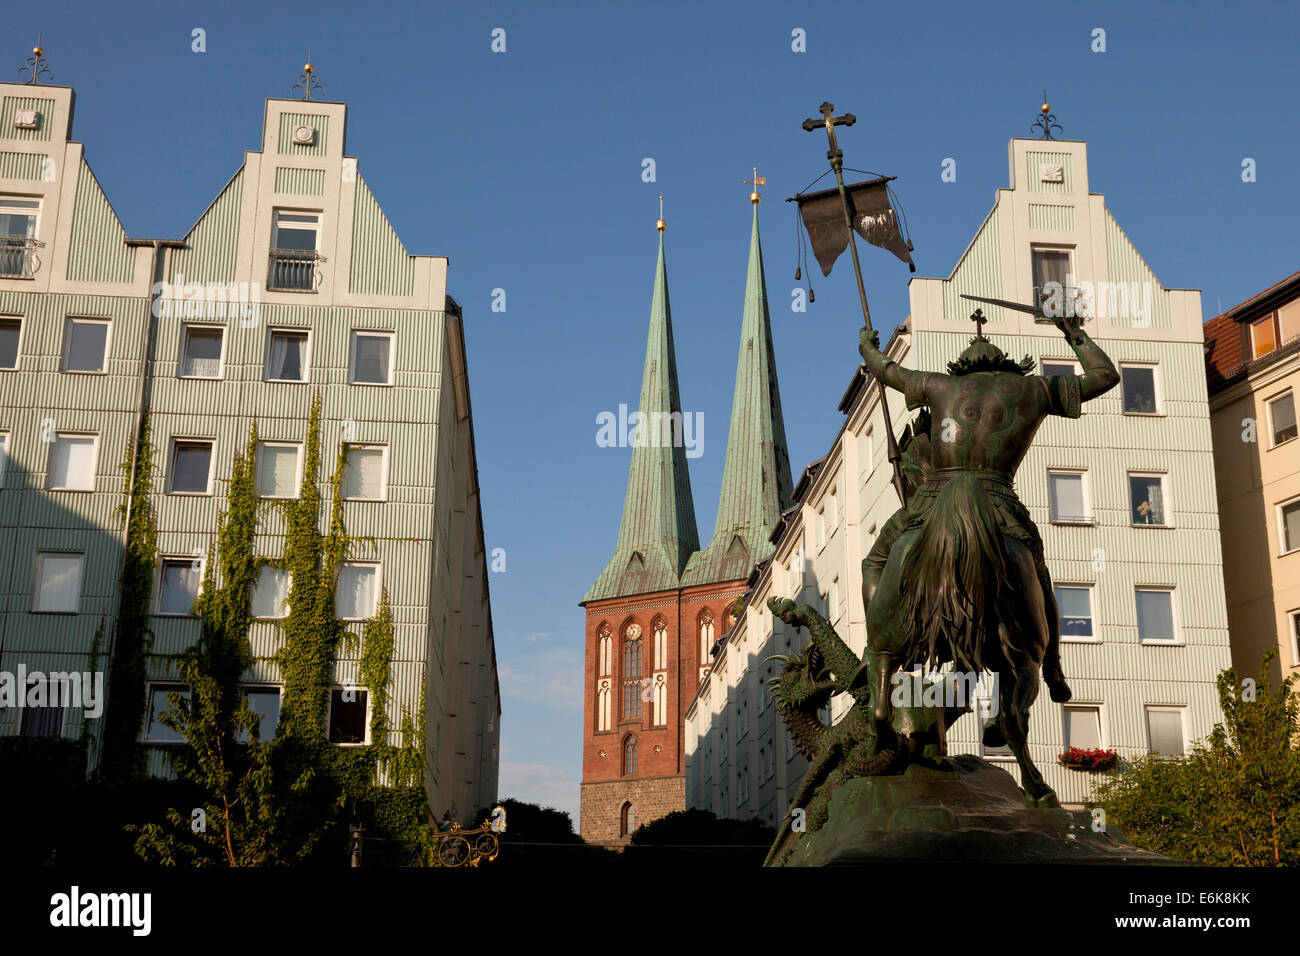 St George the dragon-slayer and Nicholas' Church,  Nikolaiviertel or Nicholas' Quarter in Berlin, Germany, - Stock Image